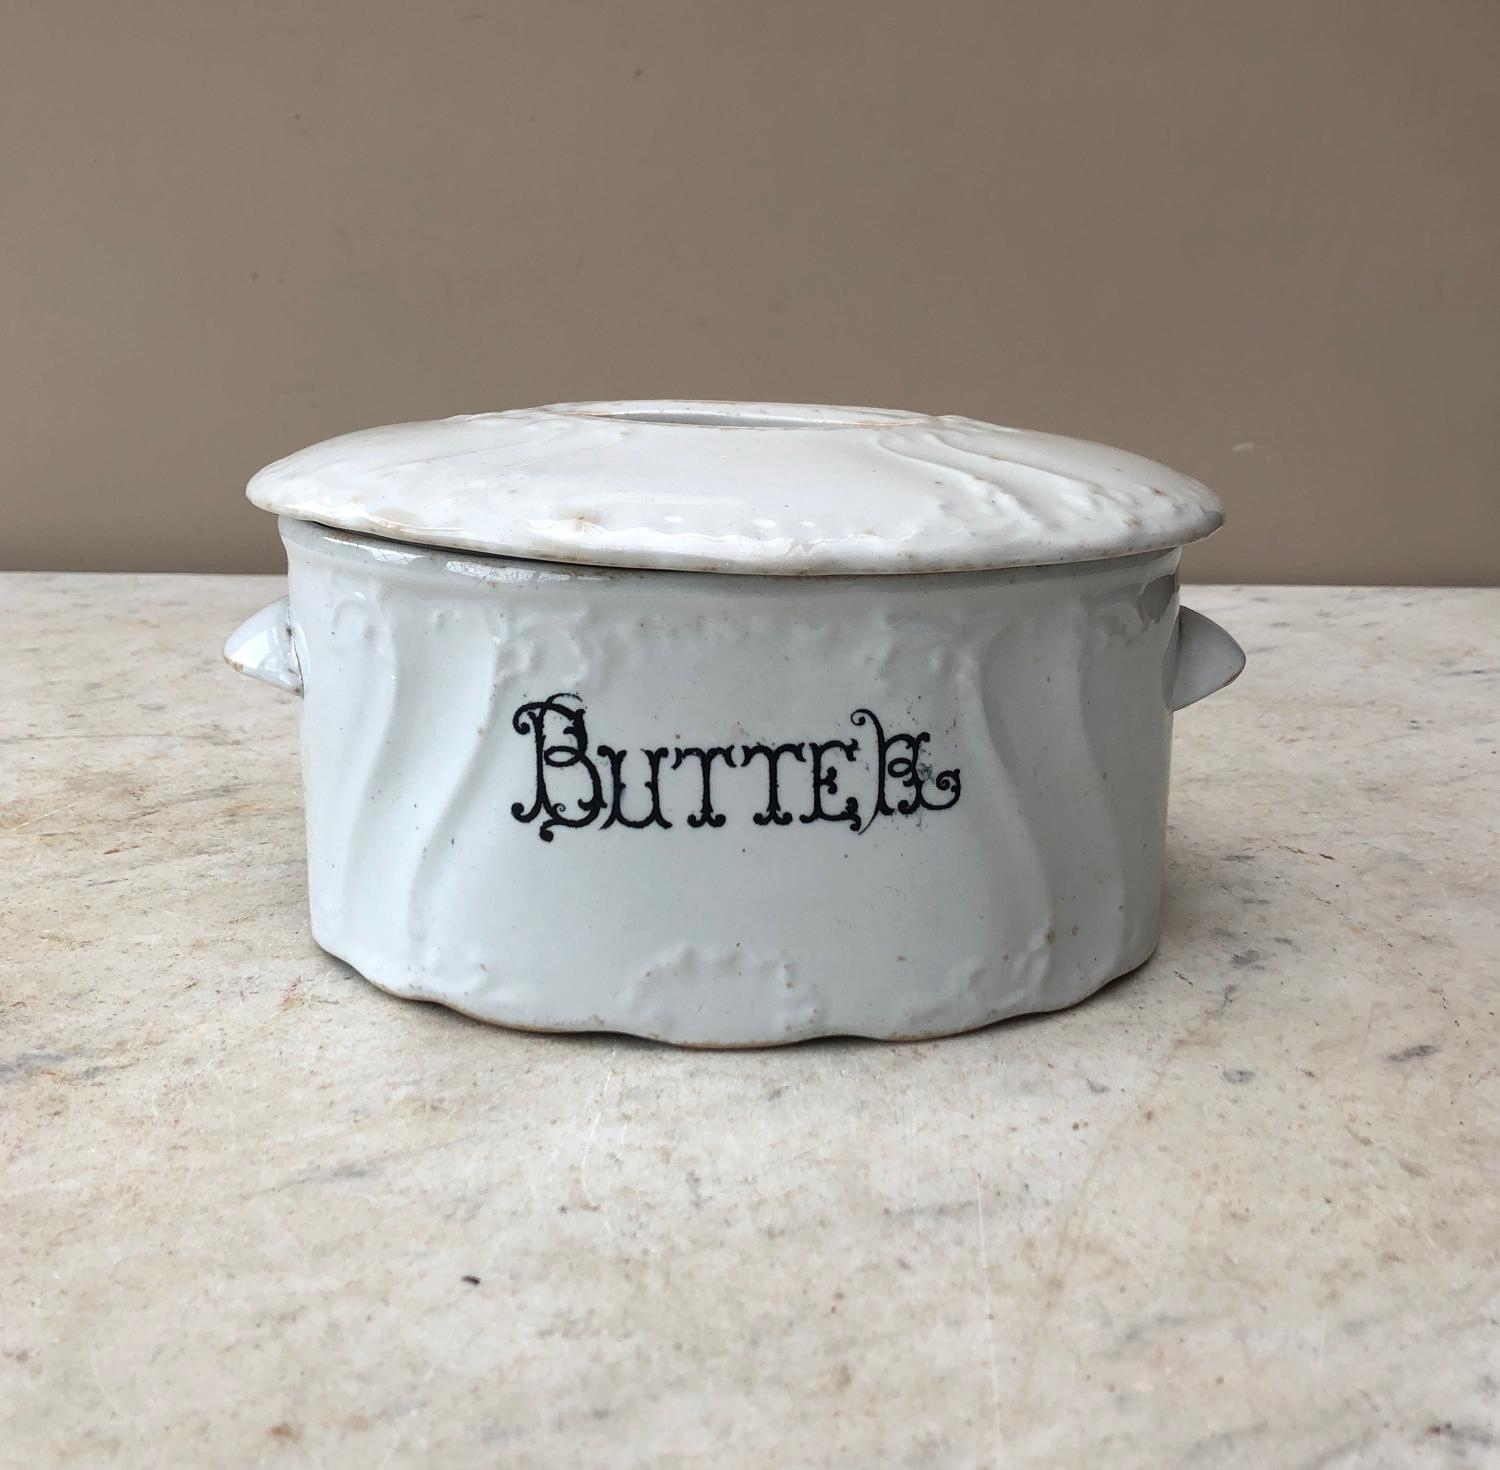 Late Victorian White Ironstone Butter Dish with Original Lid